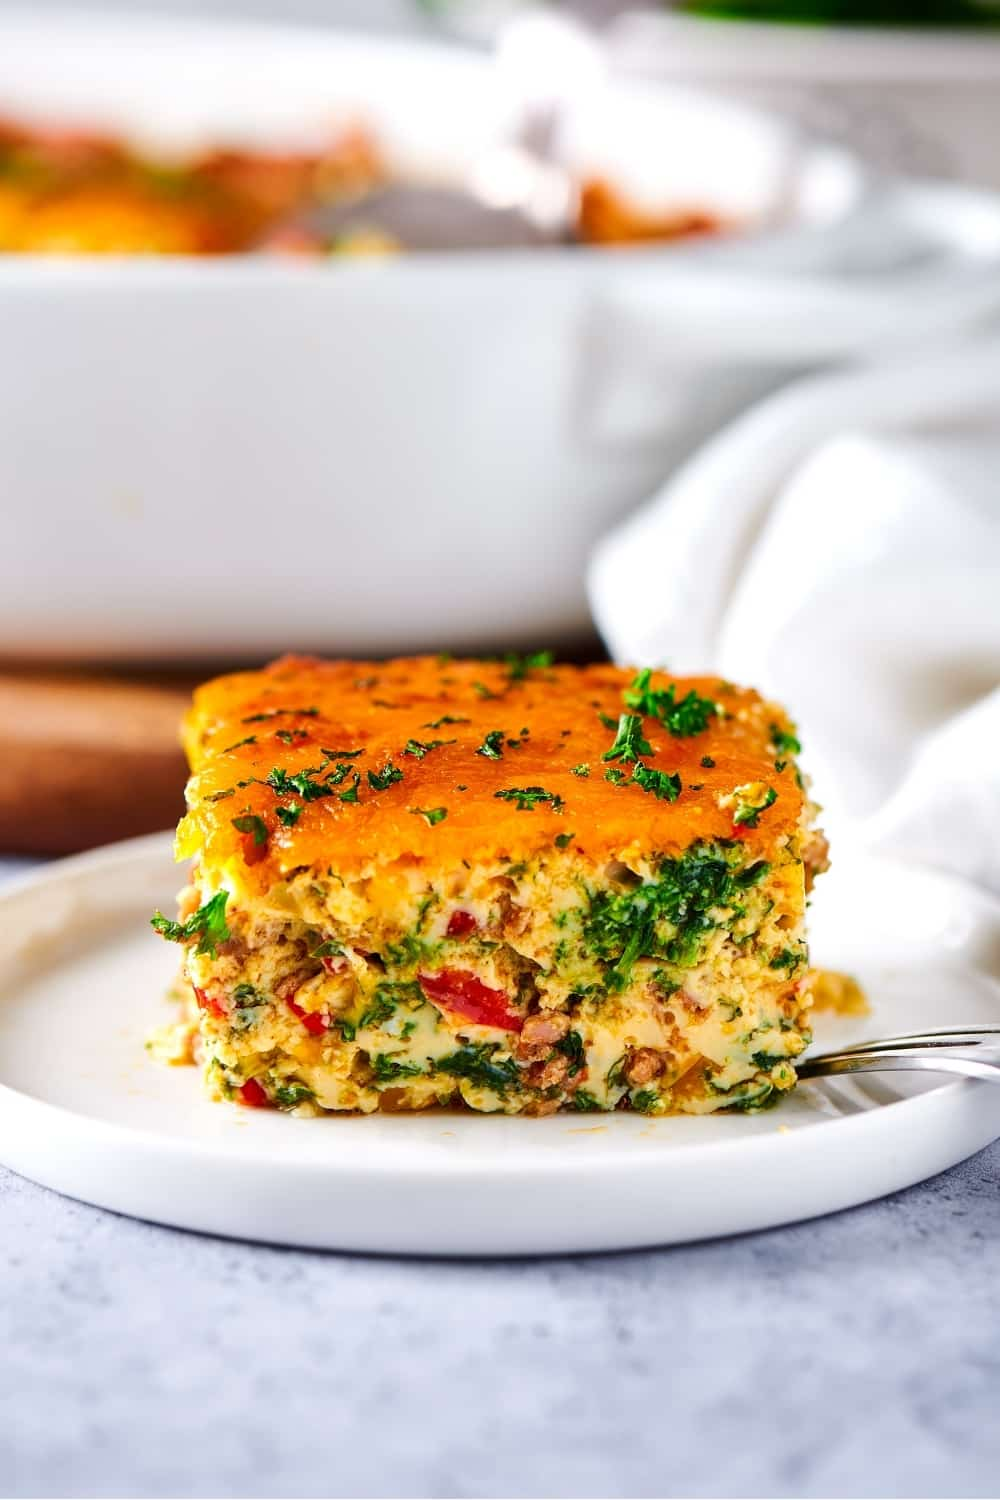 A square of breakfast casserole on top of a white plate on a gray counter.